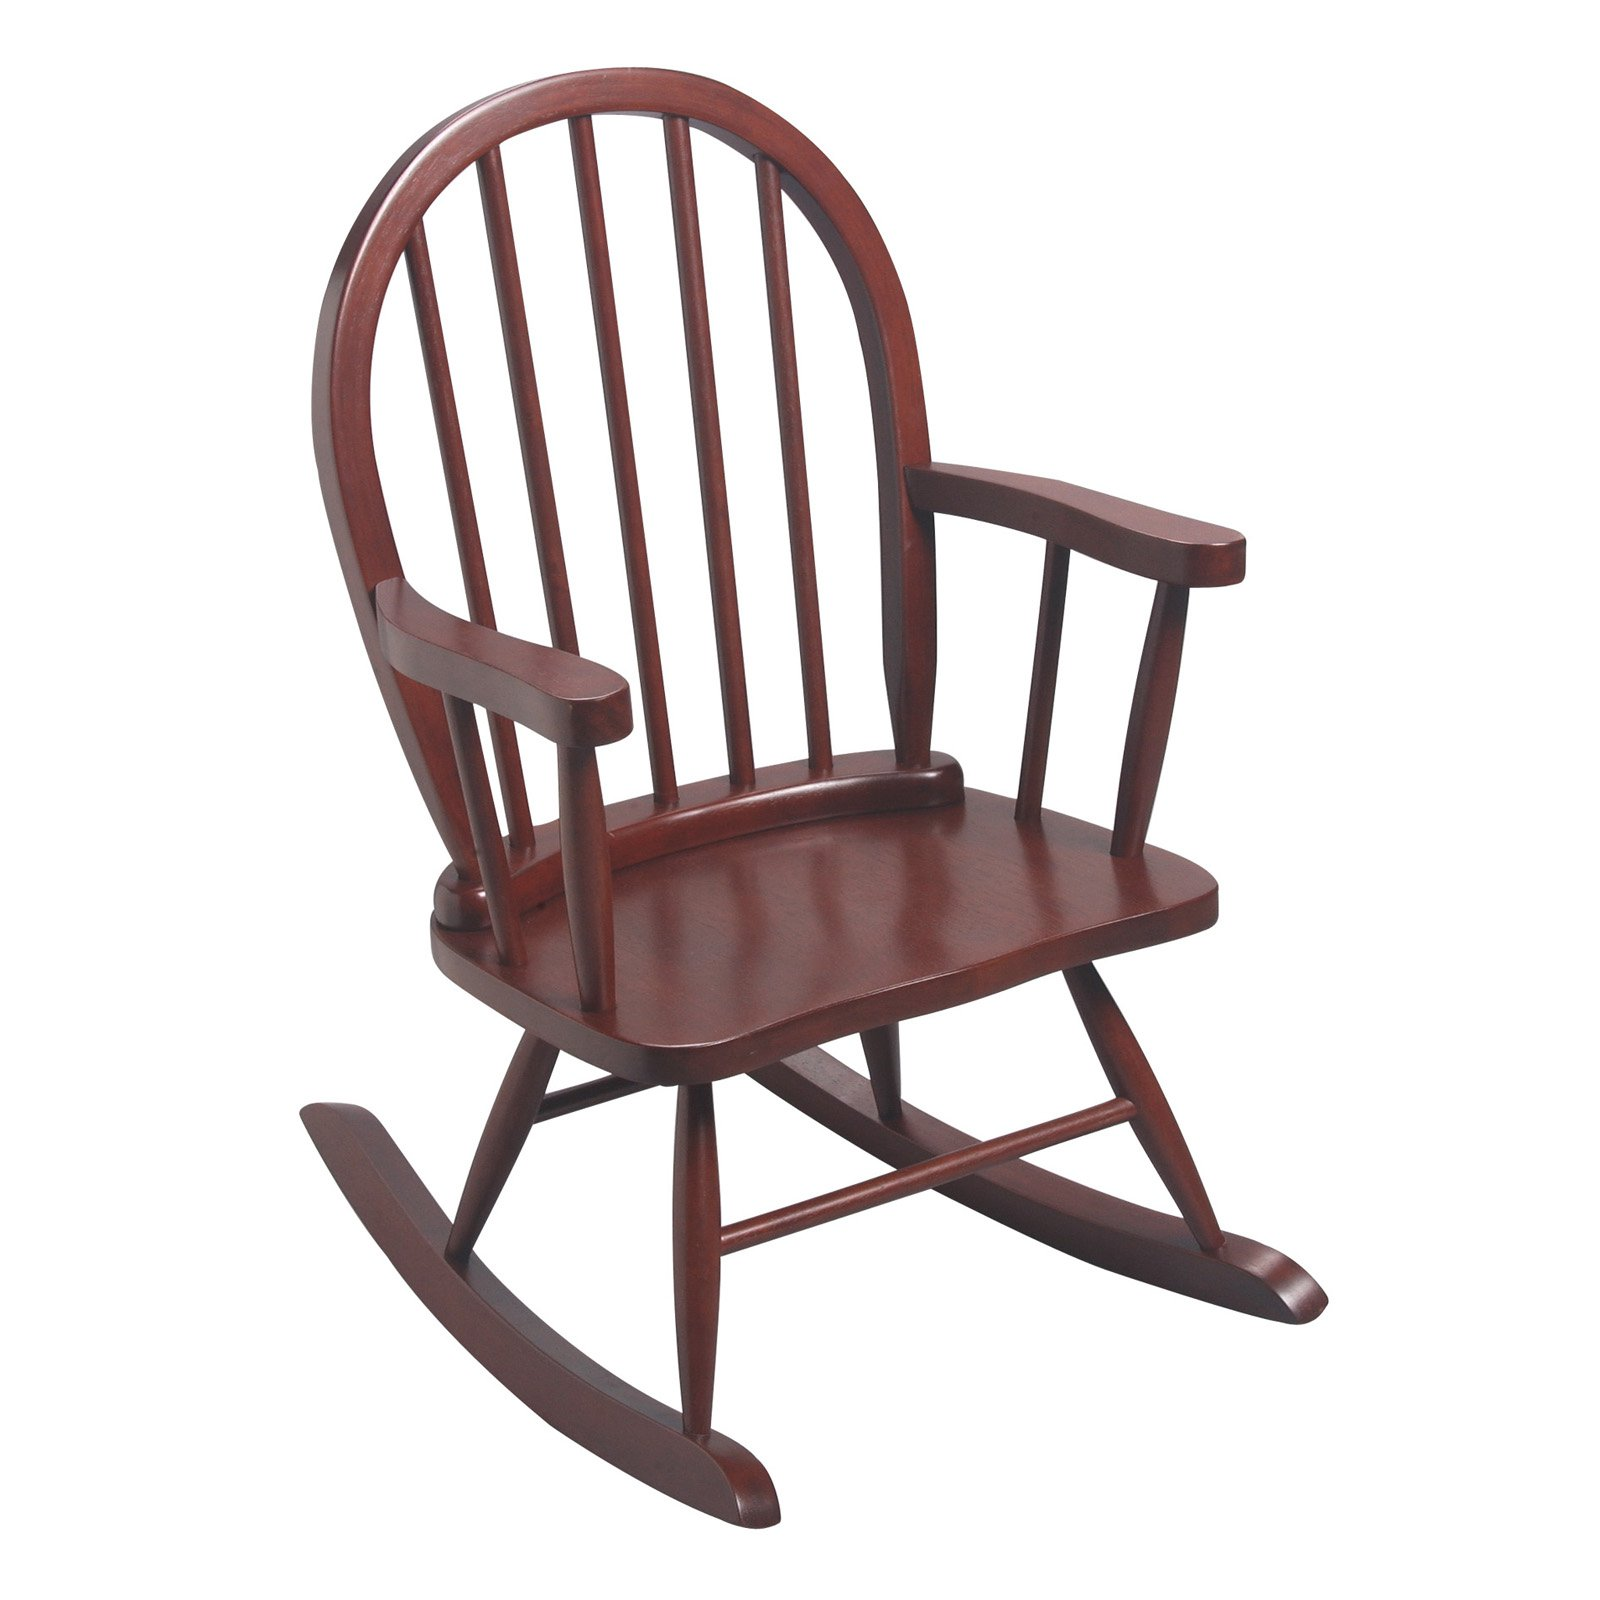 Gift Mark Windsor Childrens 3600 Rocking Chair - Cherry